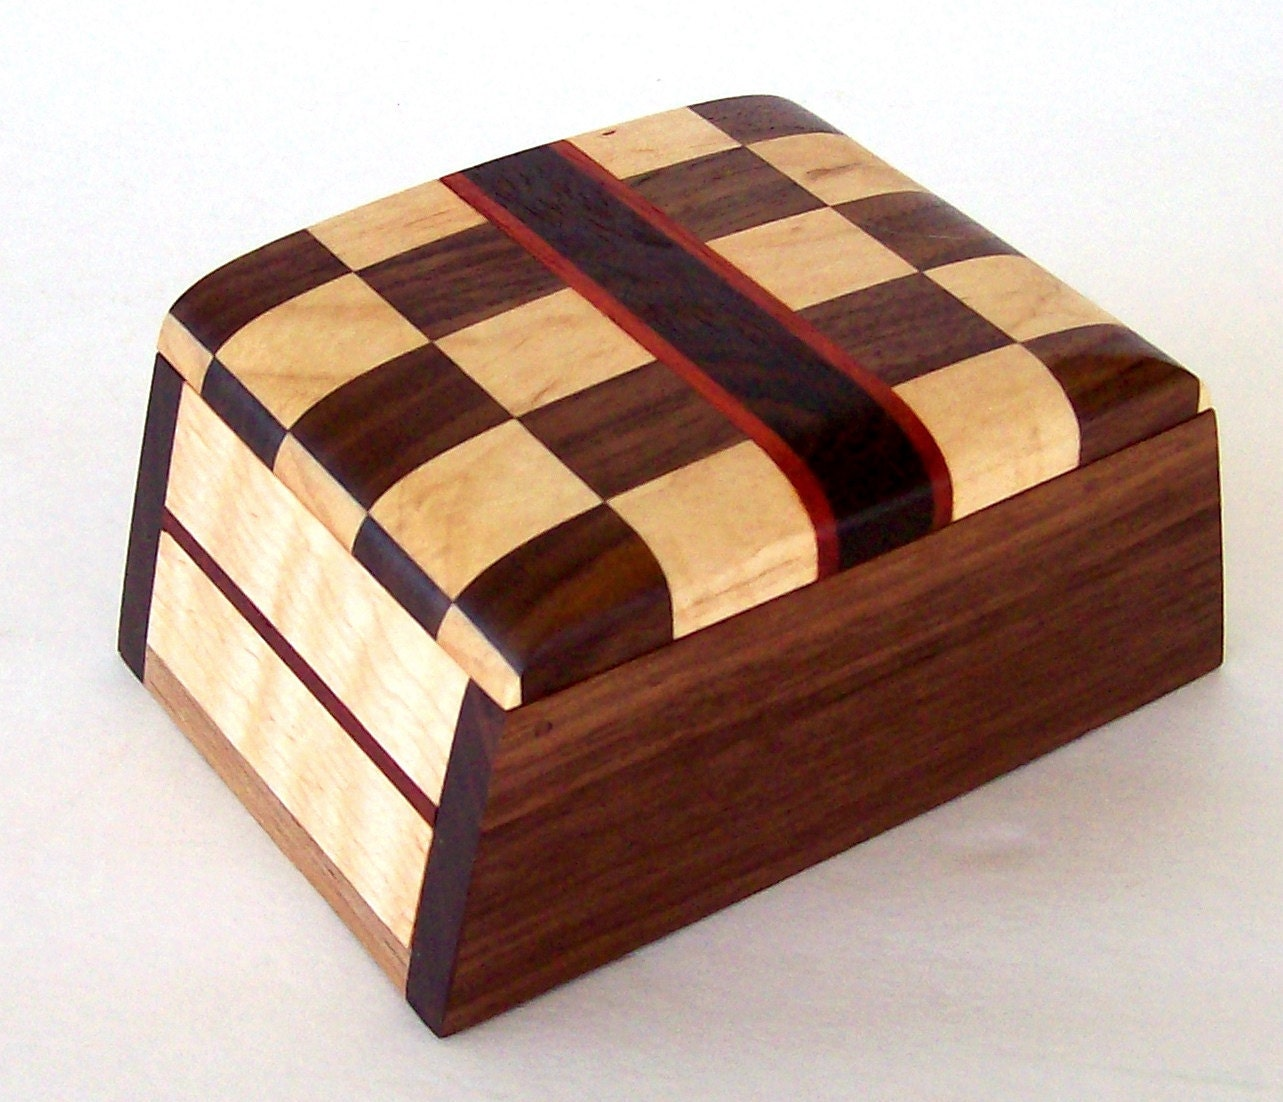 Wood Keepsake Box With Checkerboard Inlay Design Wooden